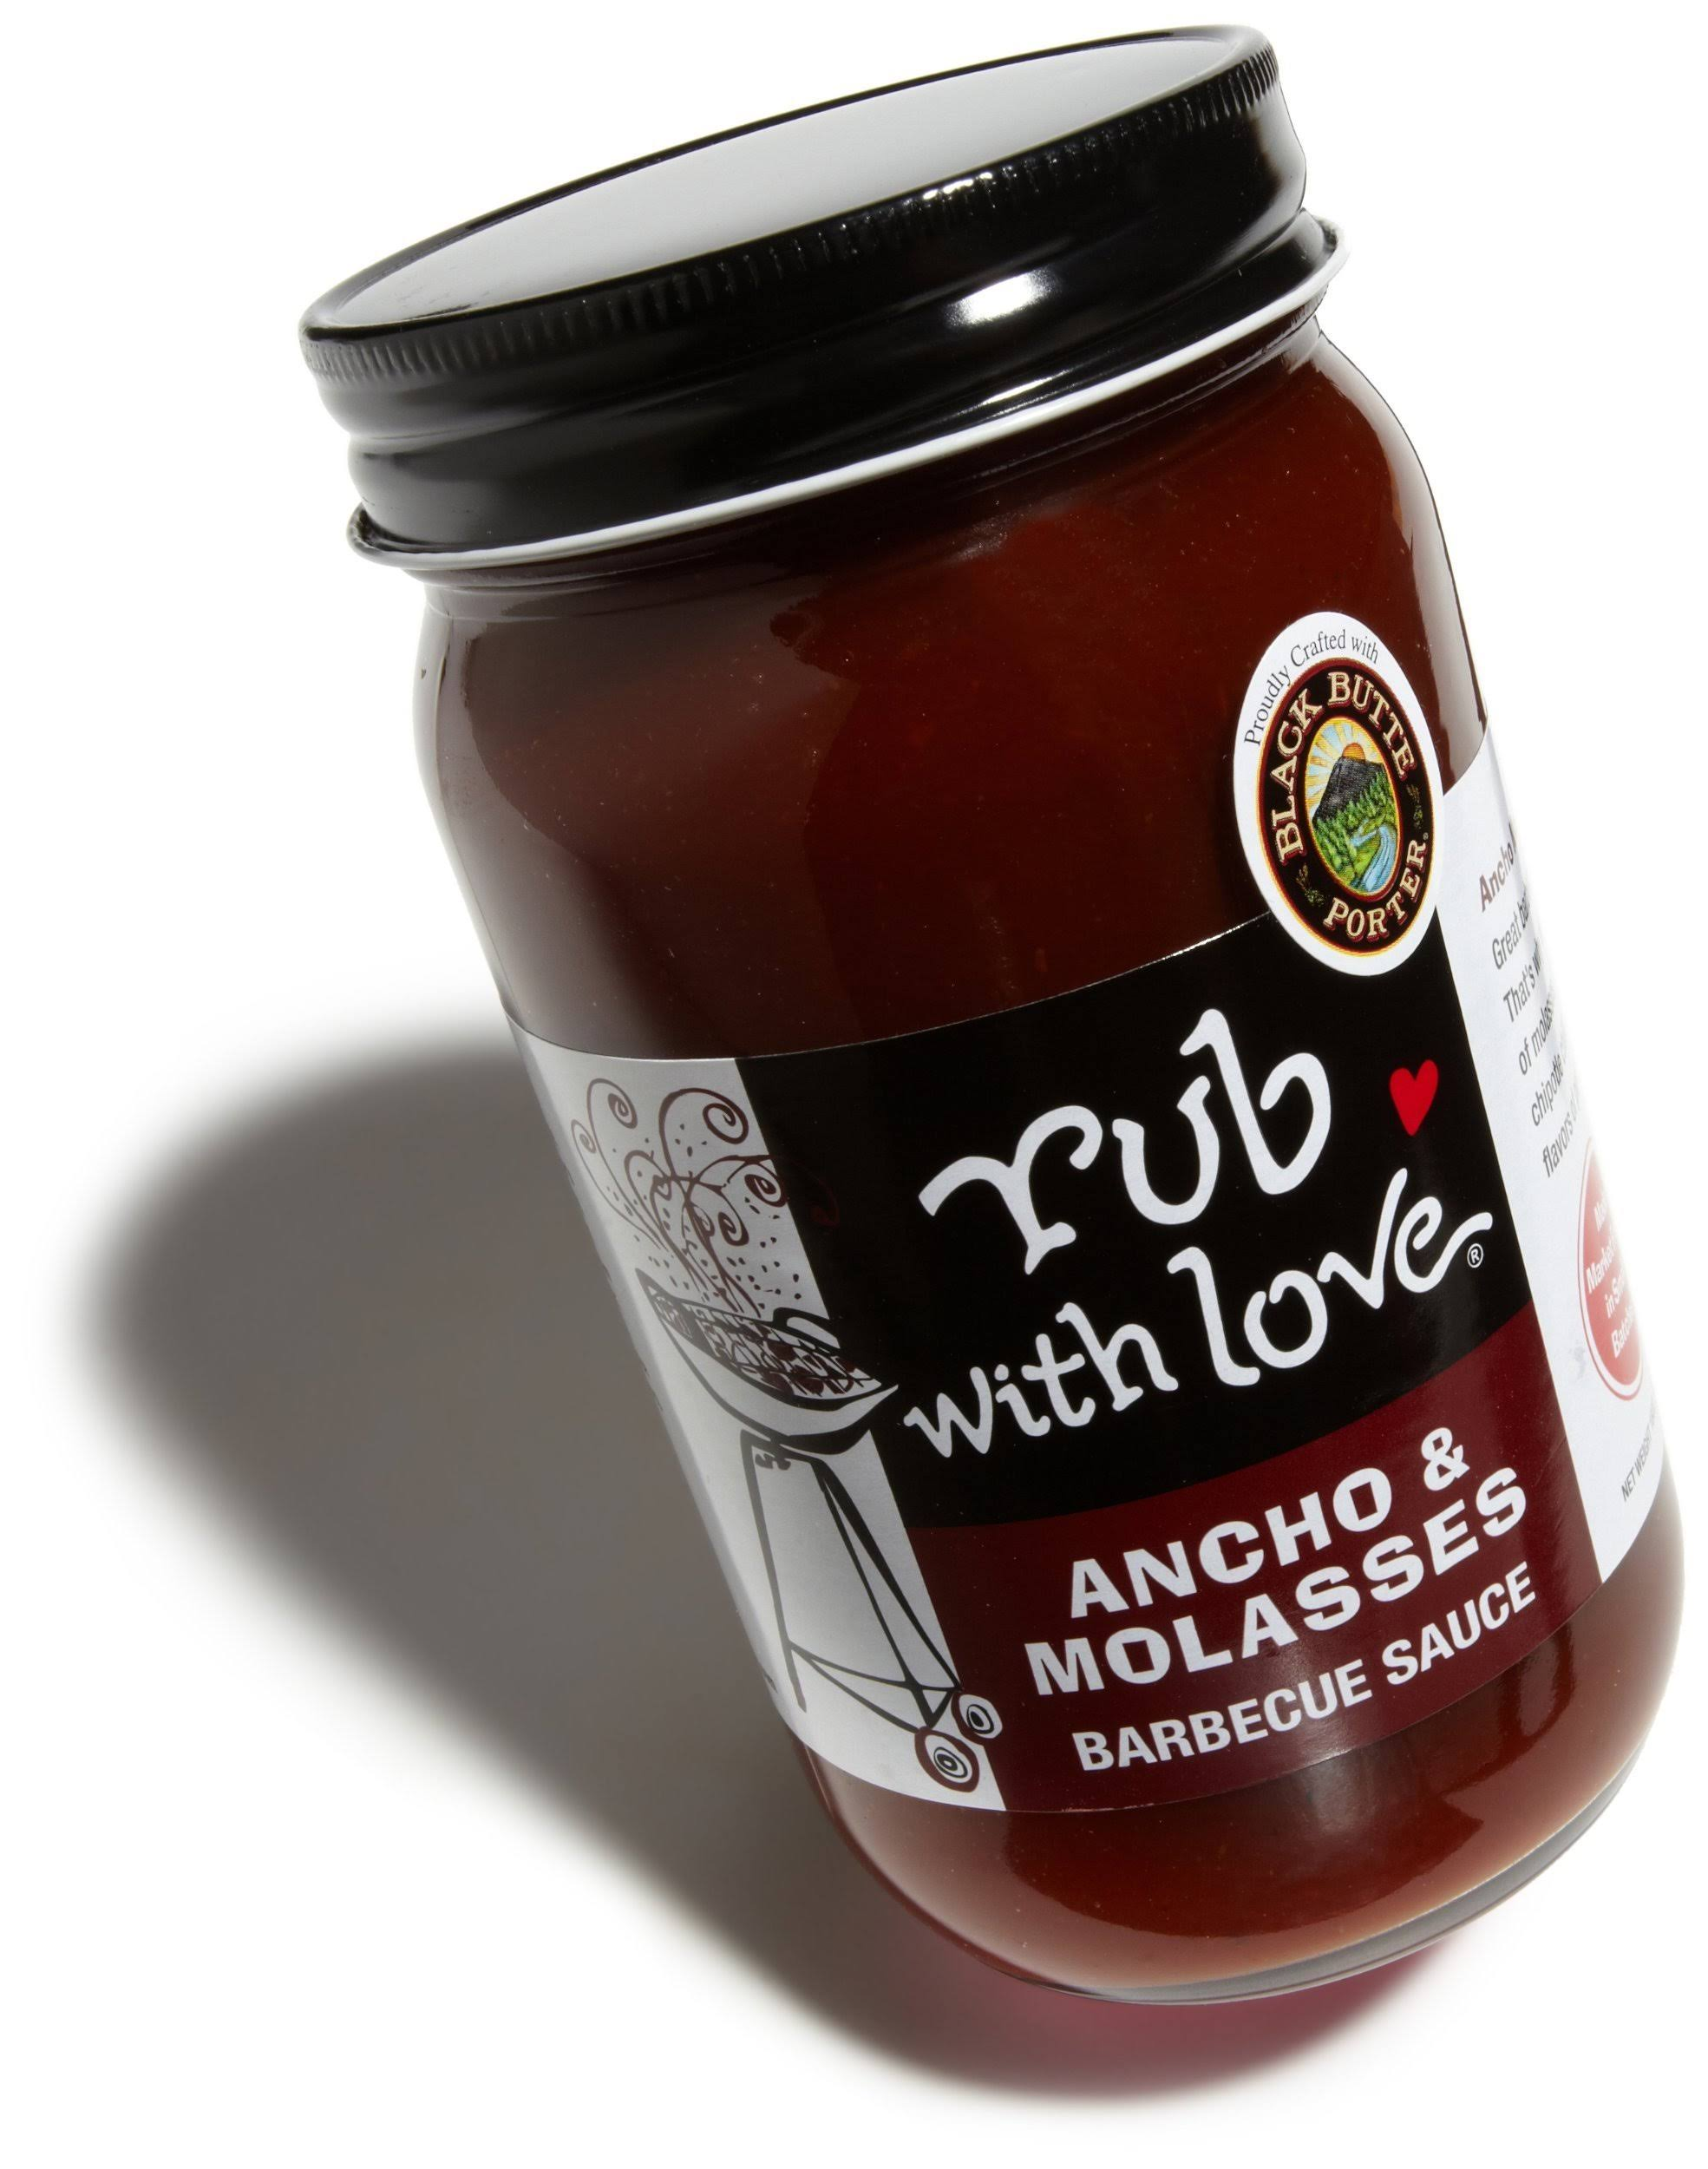 Rub With Love Barbecue Sauce - Ancho and Molasses, 16oz